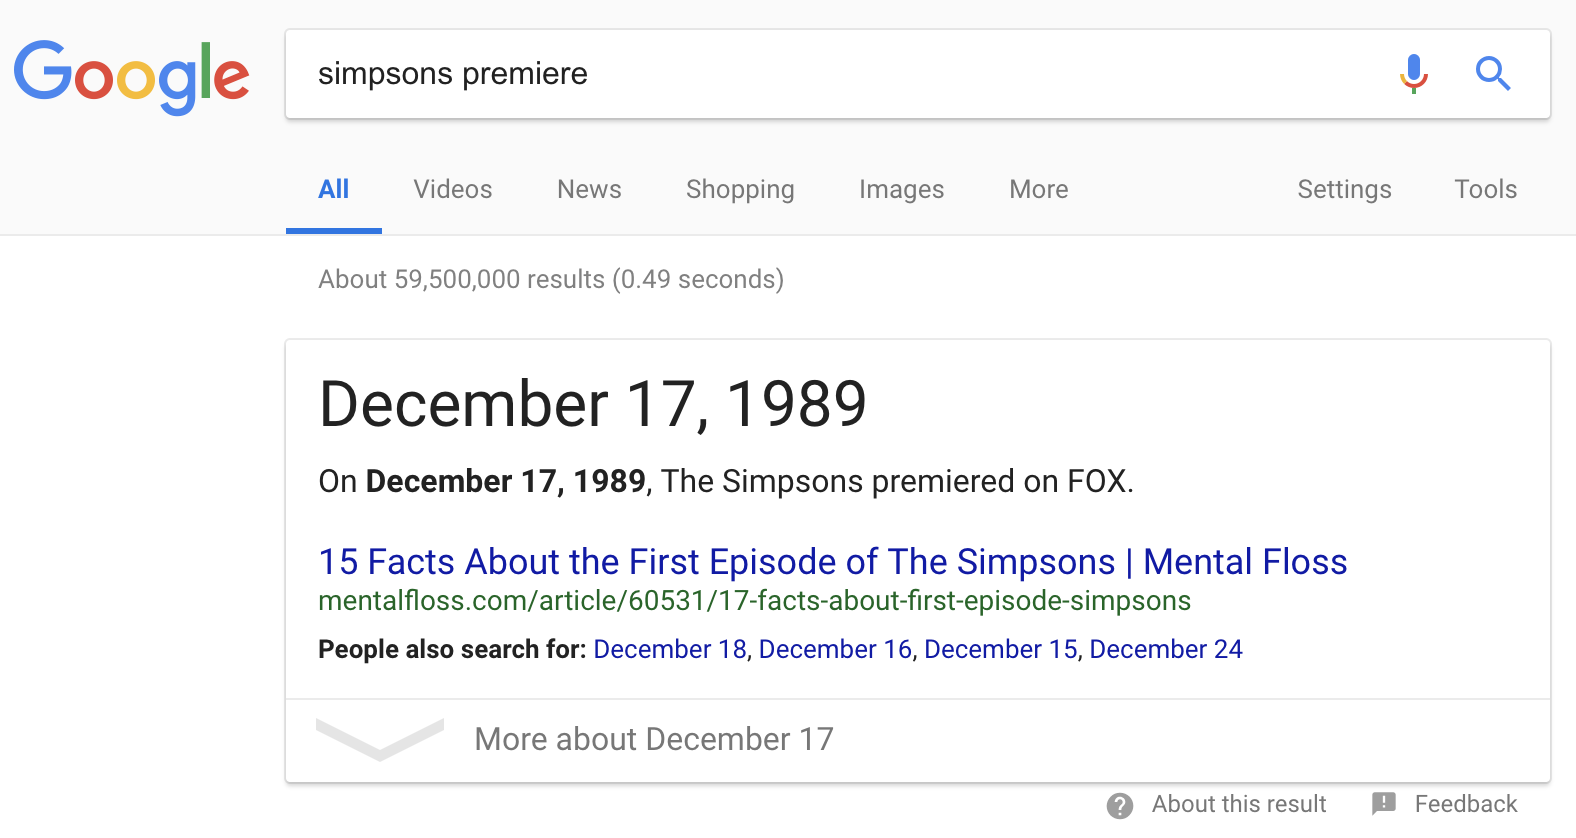 The Simpsons' first episode premiere date featured Google snippet